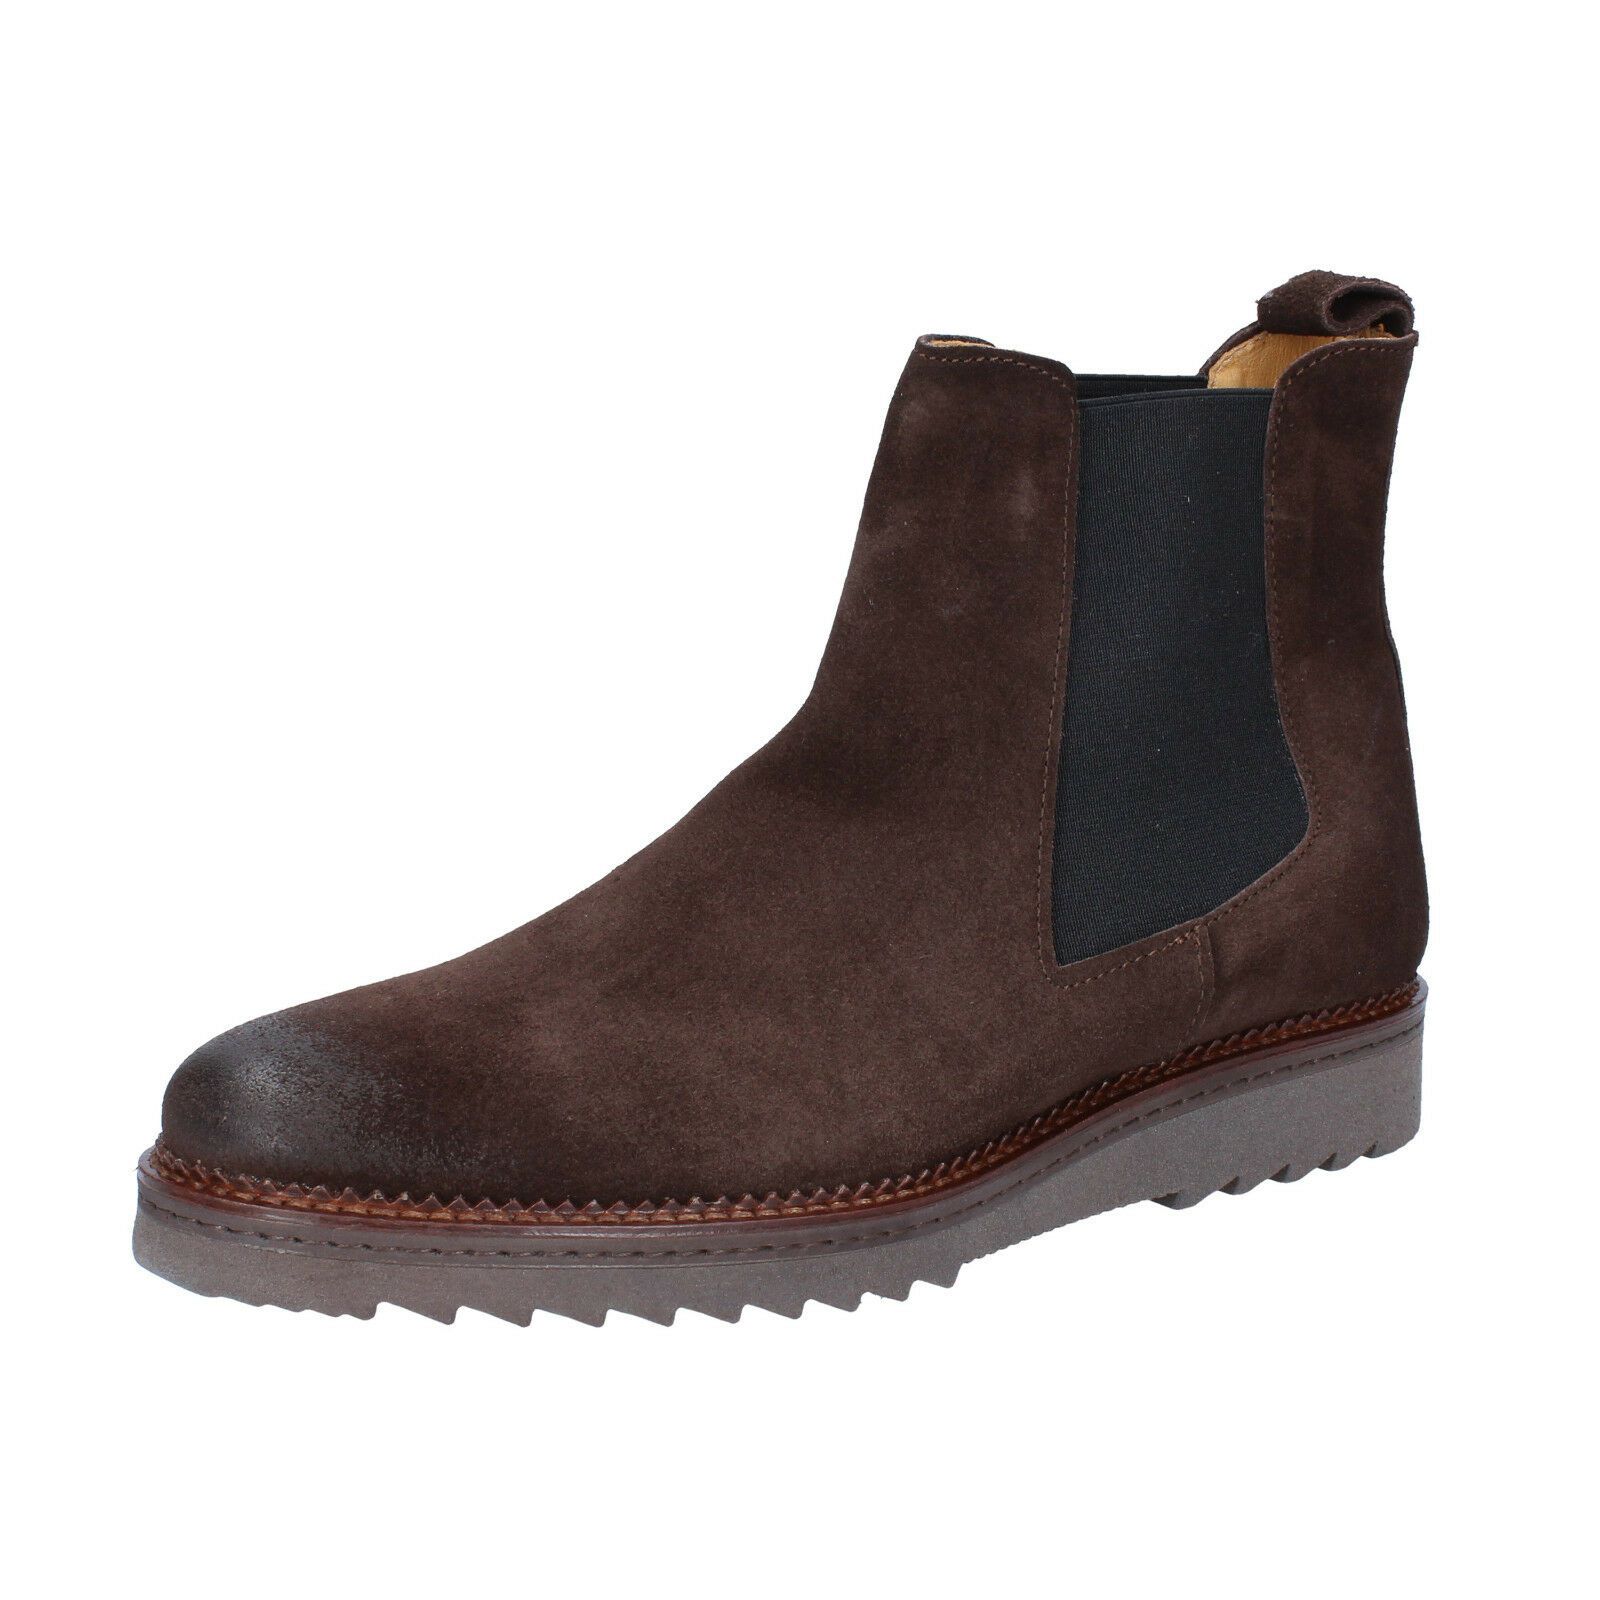 Mens shoes SALVO BARONE 8 ( EU 42 ) ankle boots brown suede BZ141-D